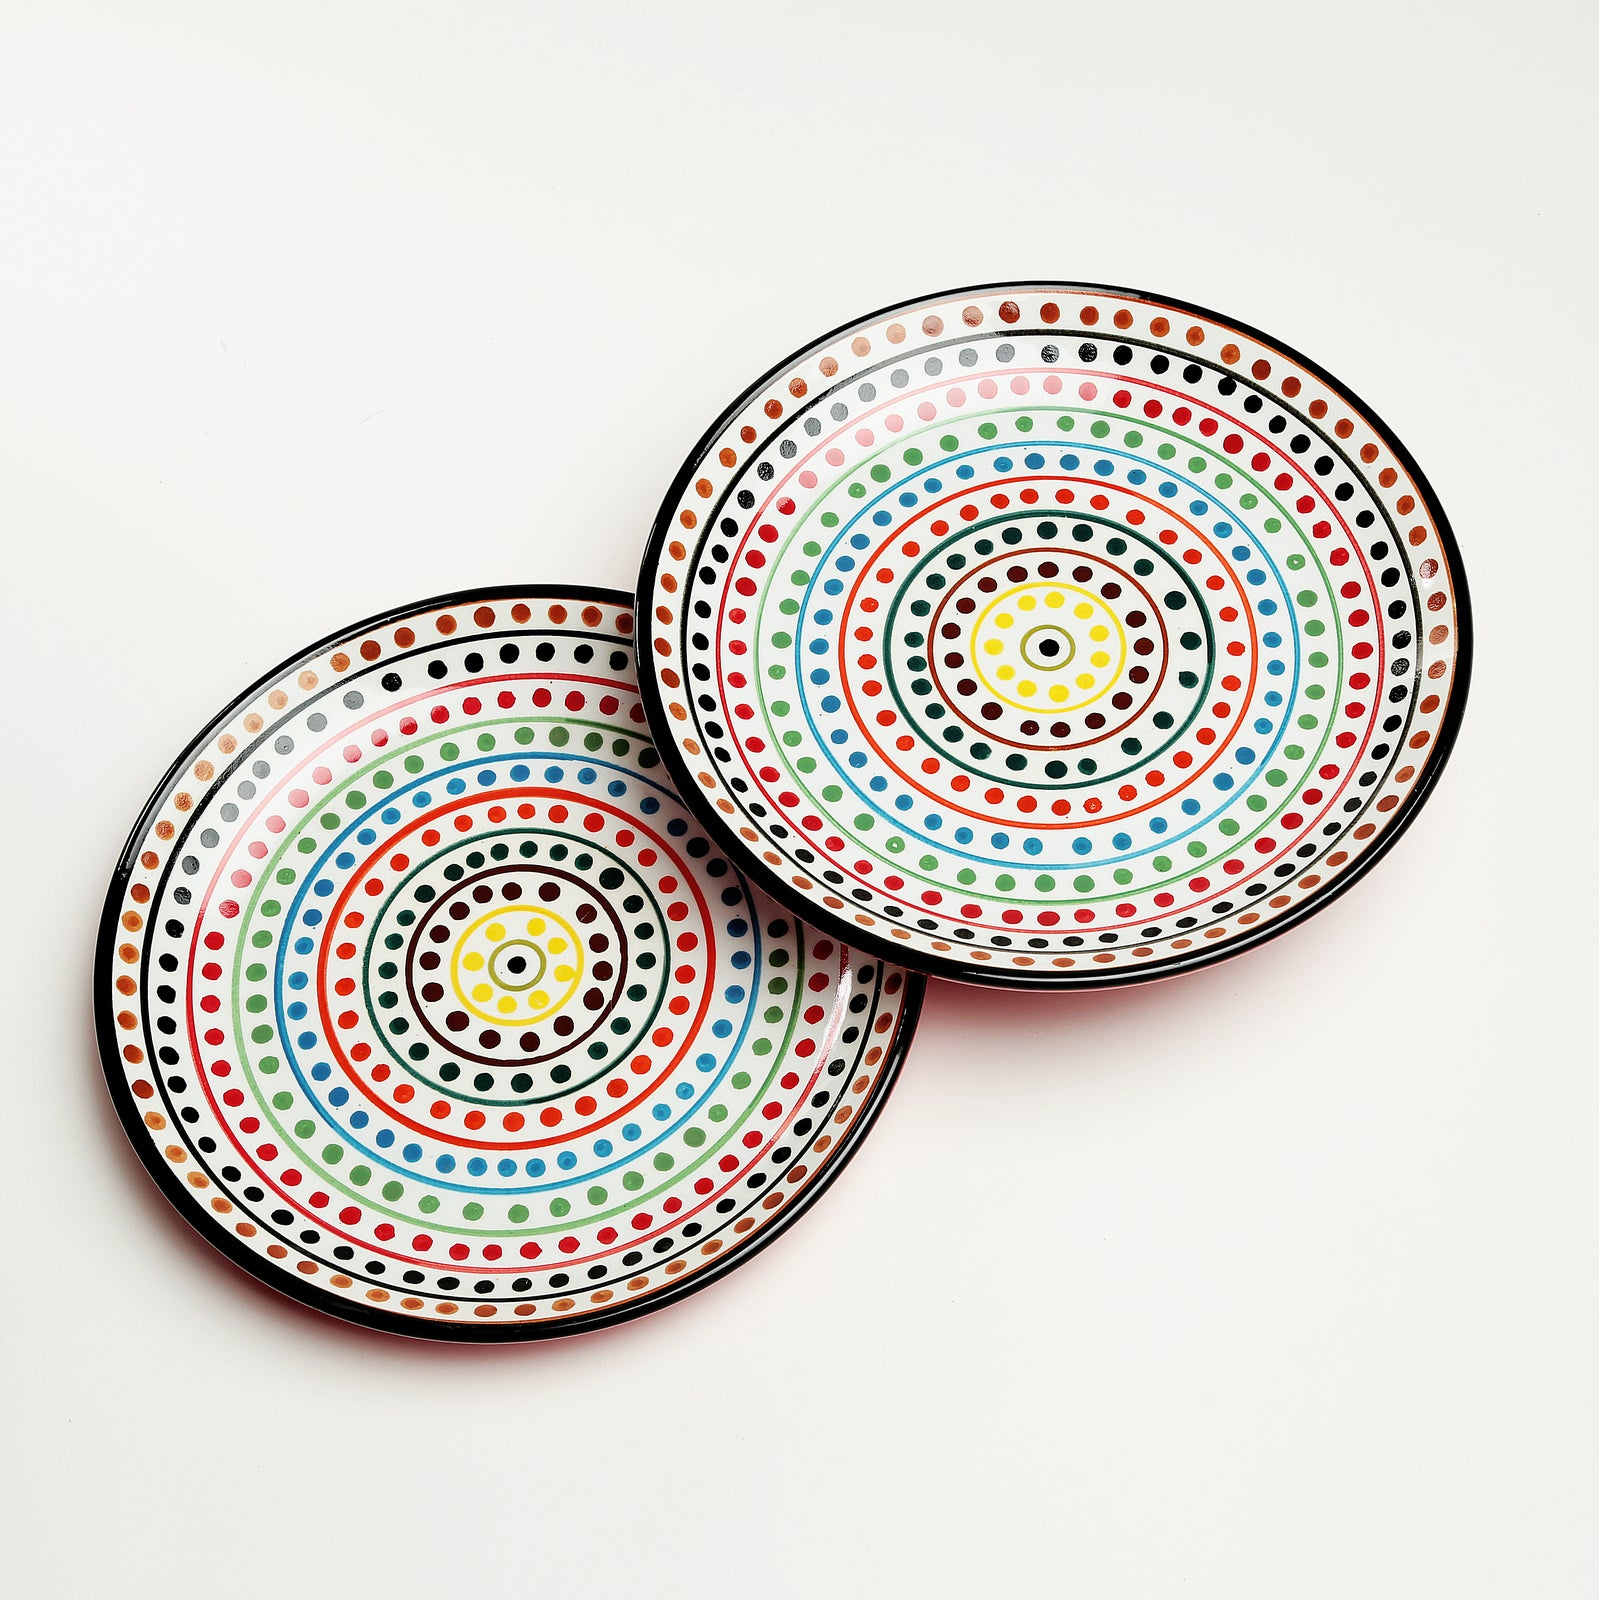 Clara Handpainted Dinner Plates - Set of 2